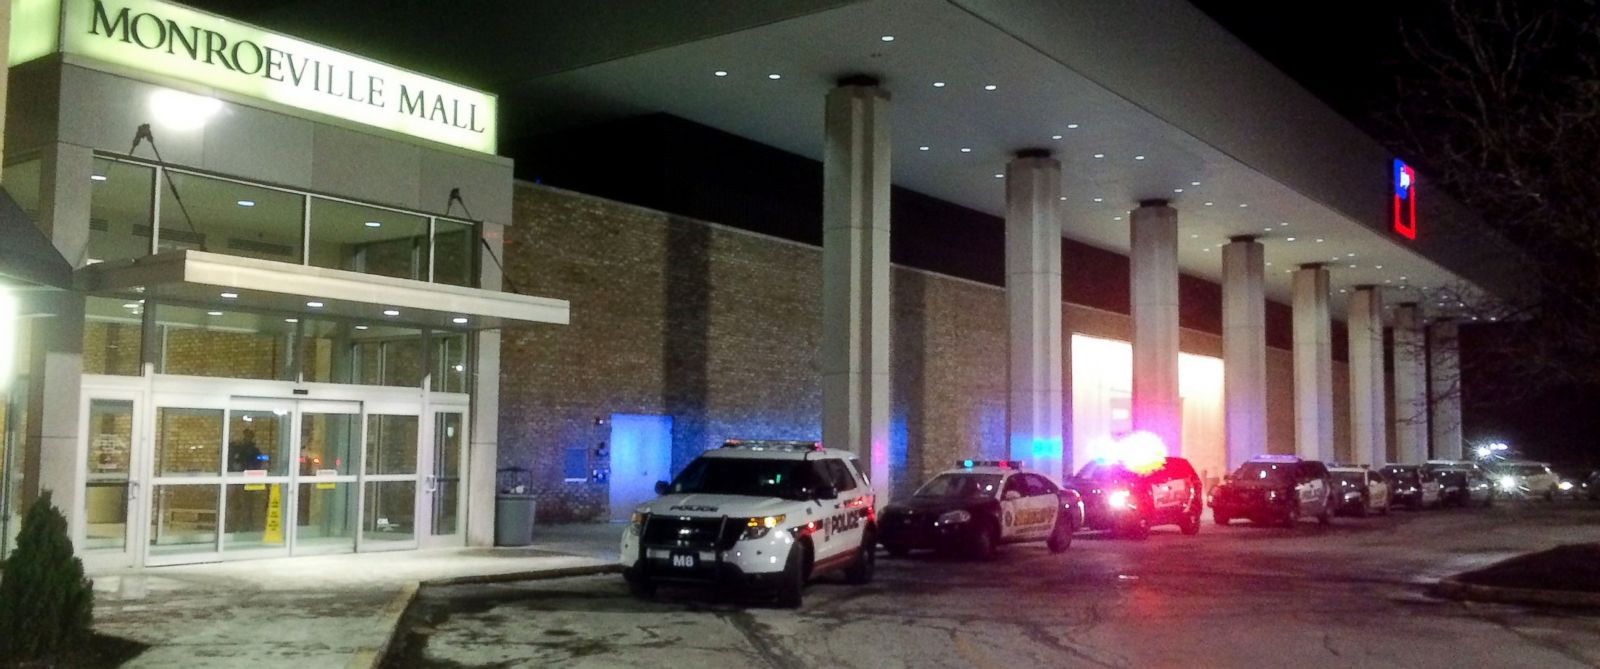 PHOTO: Police vehicles line up outside Monroeville (Pa) Mall Saturday, Feb. 7 2015, after a shooting took place inside. As many as three people were injured.